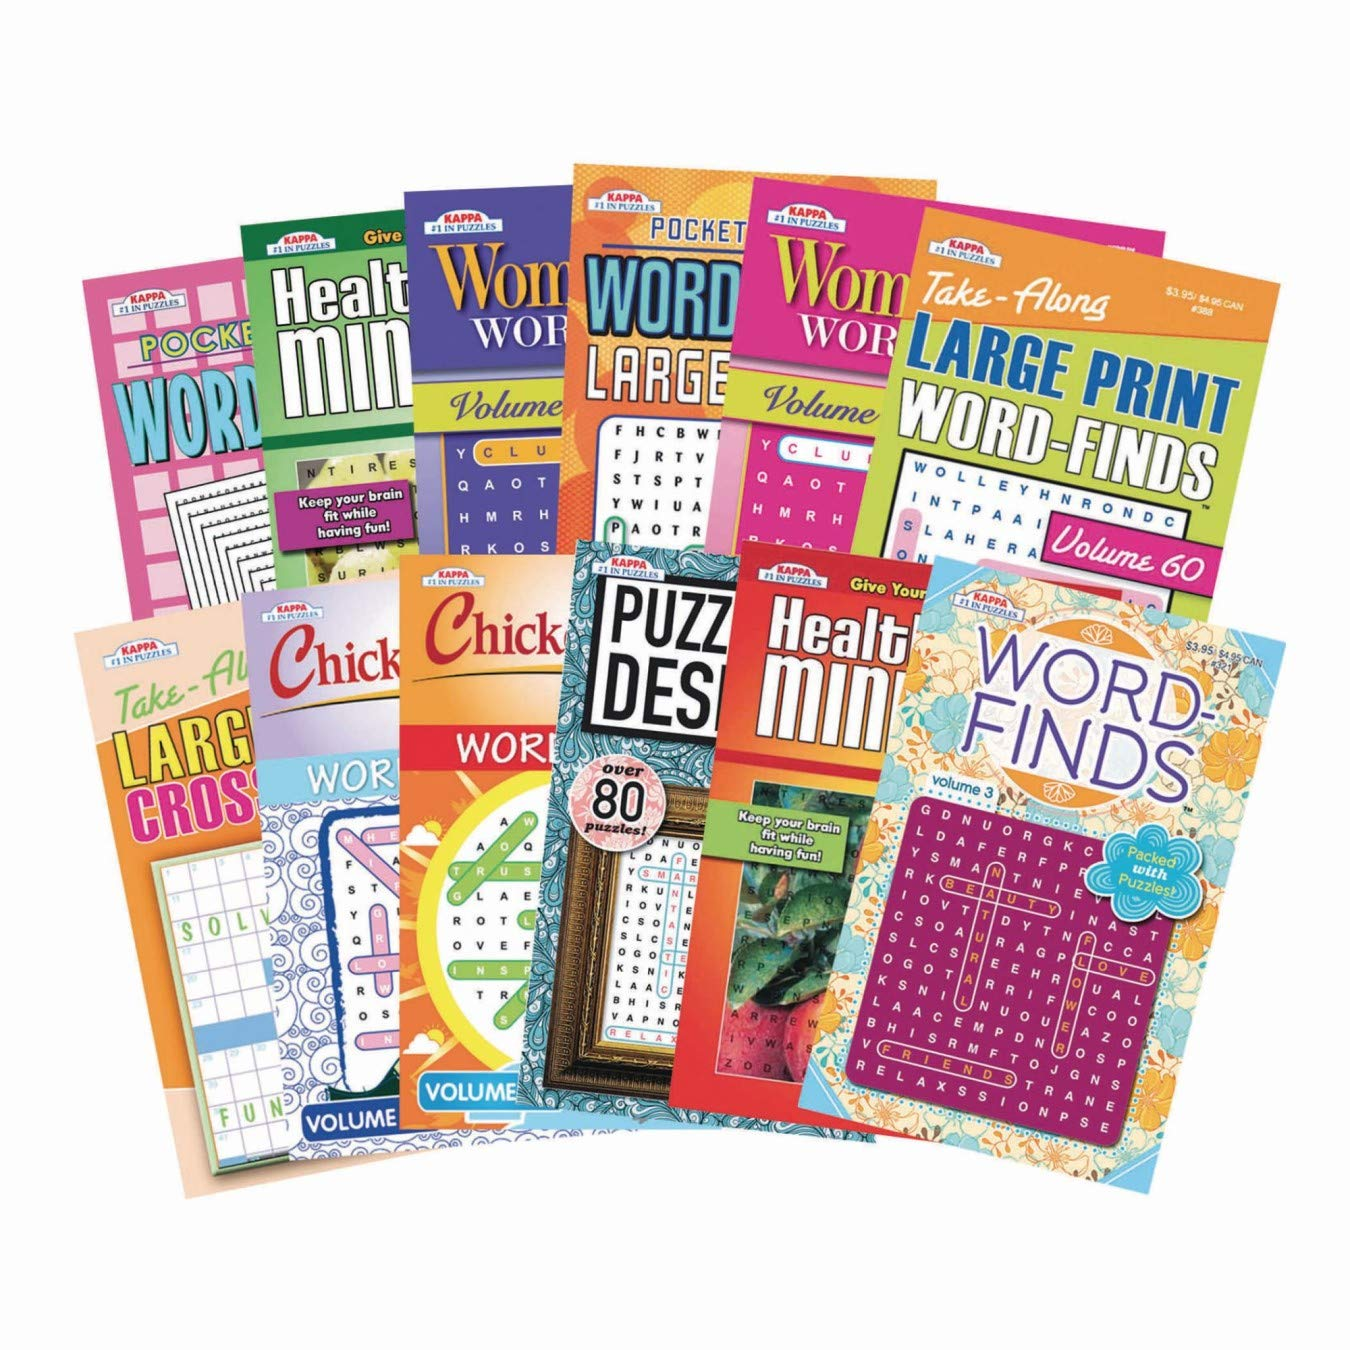 Kappa books Publisher, LLC Digest Size Word Find Puzzle Book Set (Pack of 12) (Pack of 12) by Kappa books Publisher, LLC